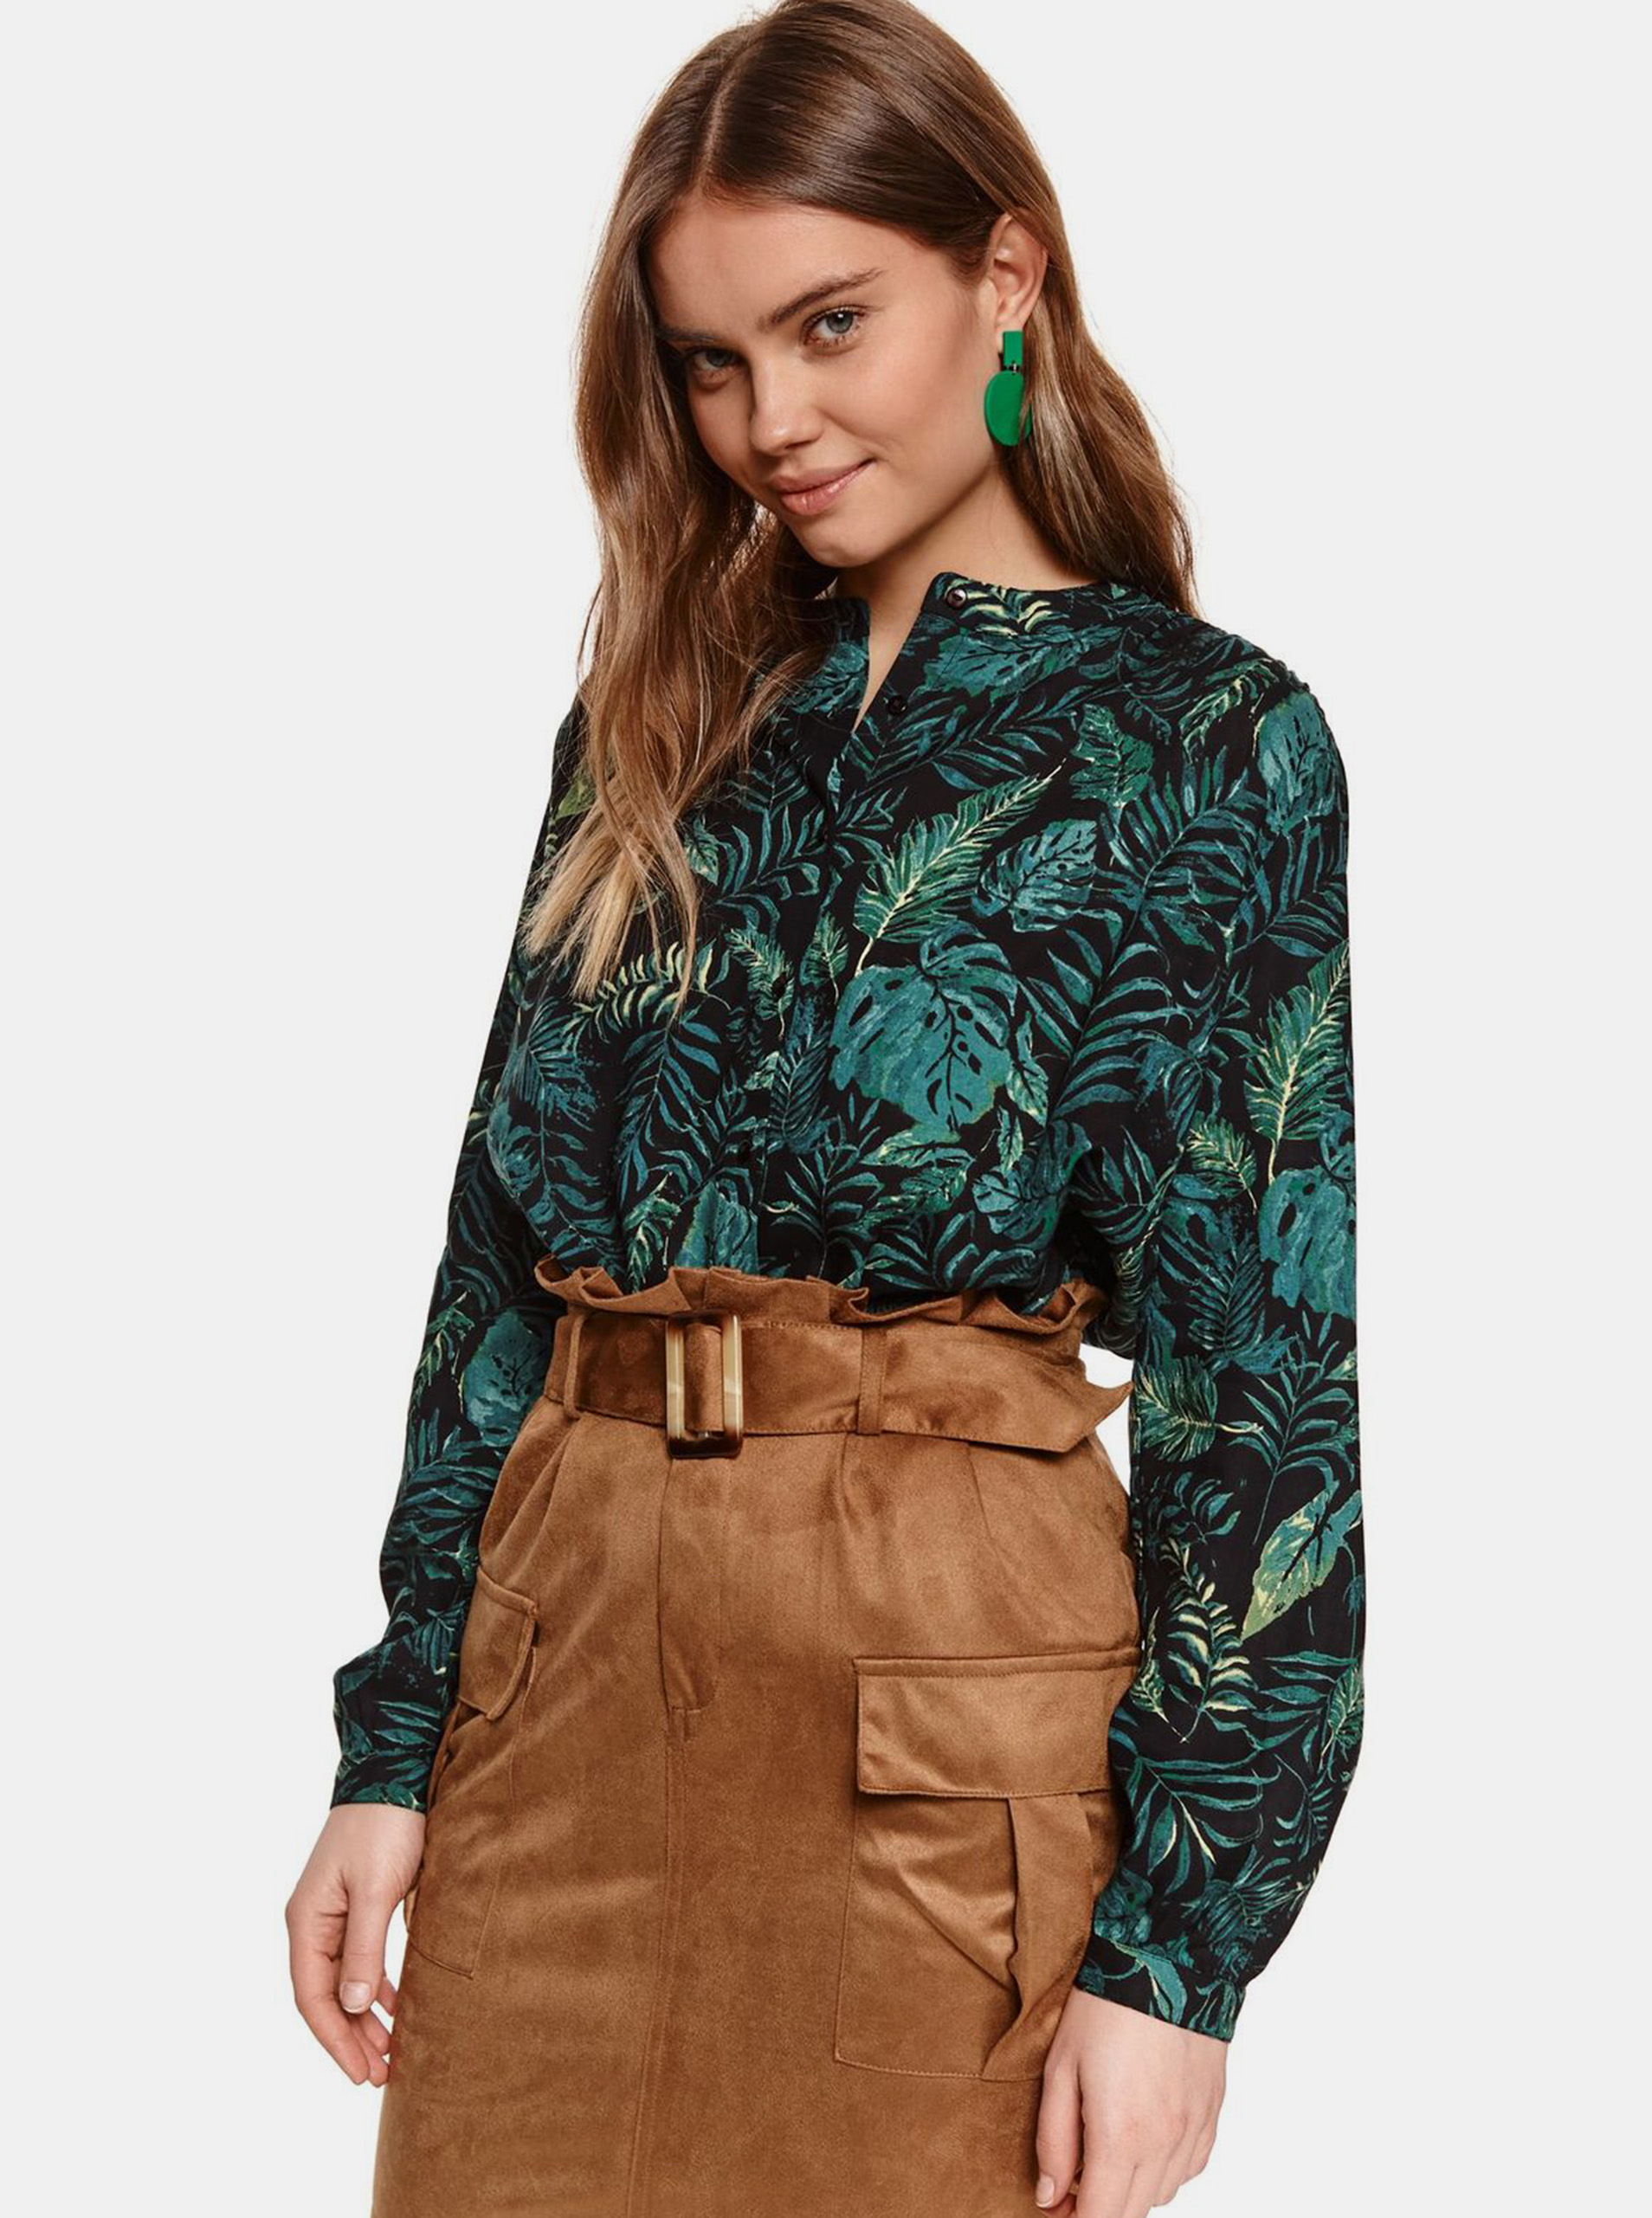 TOP SECRET blouse with pattern